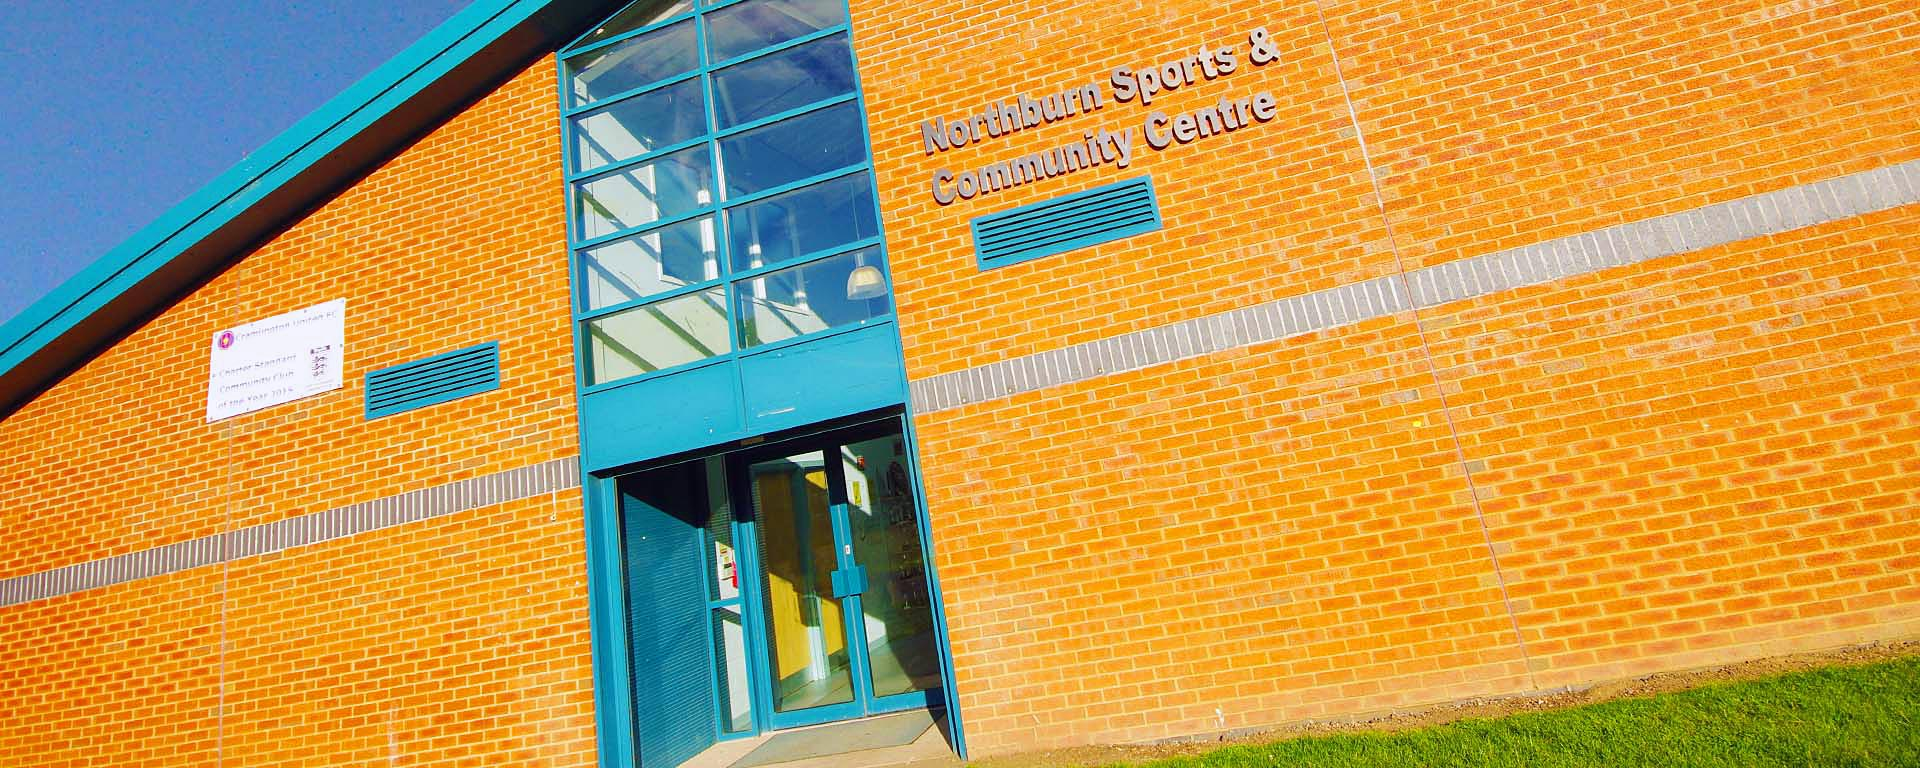 Northburn Sports and Community Centre, Cramlington